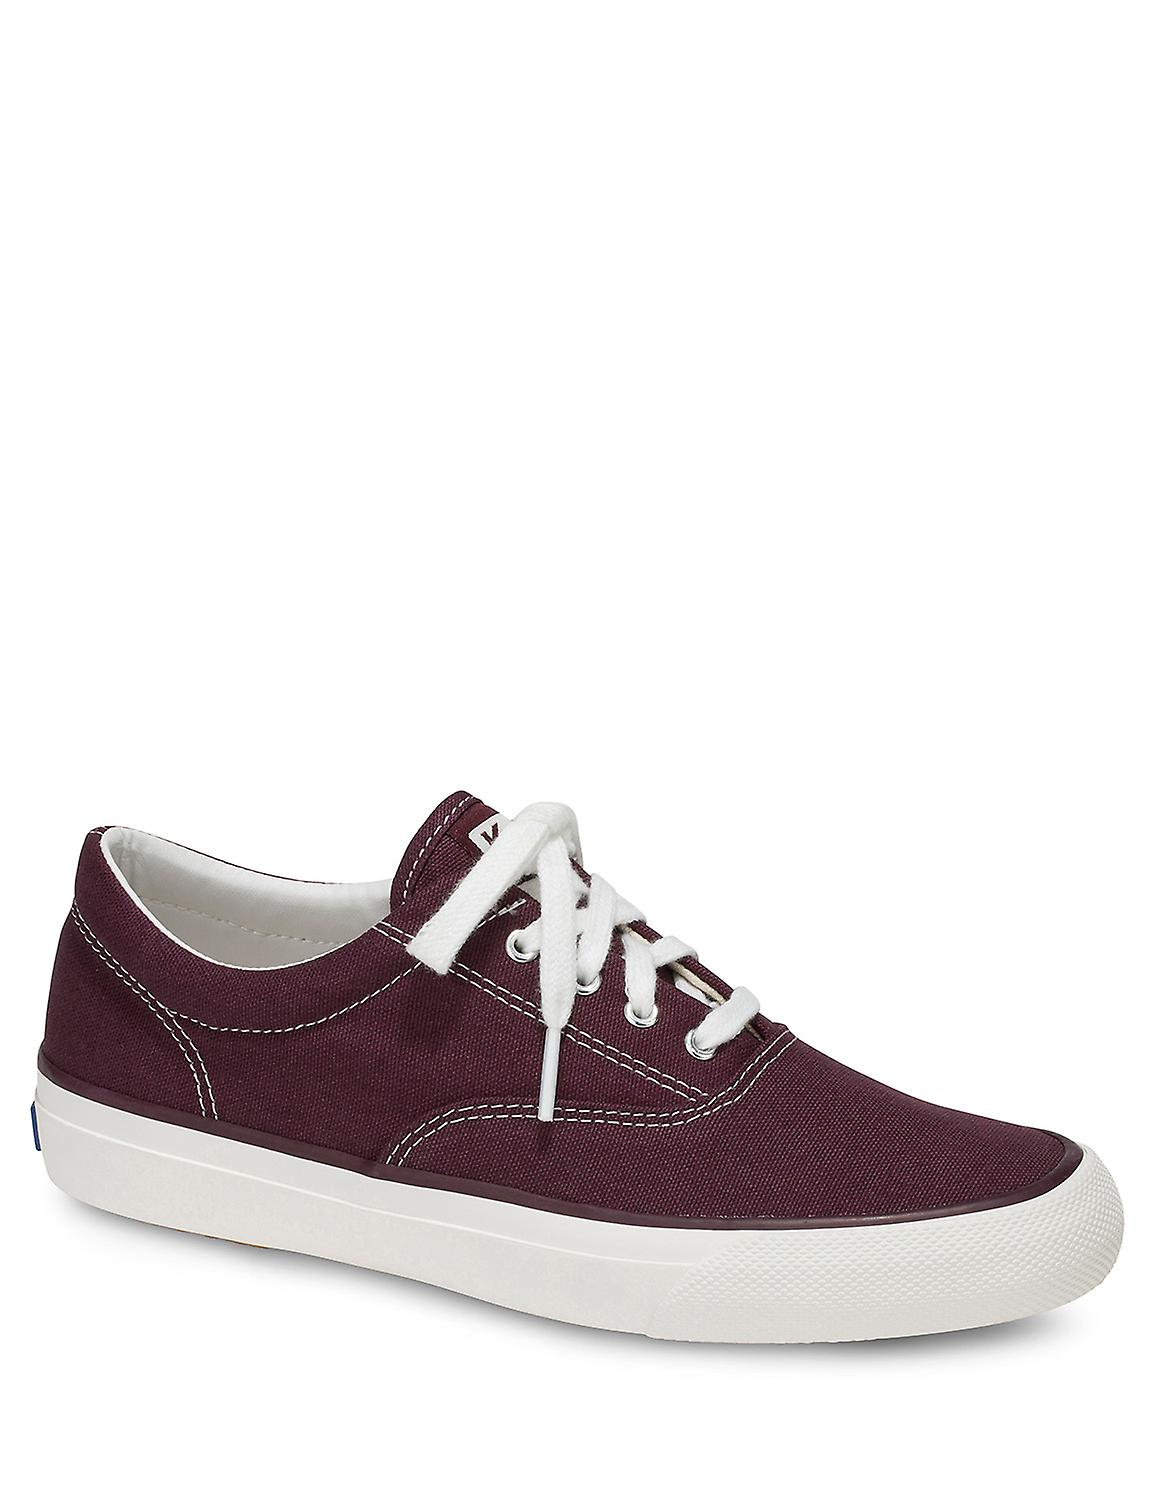 Keds Women's Anchor Canvas Sneakers KKPr6